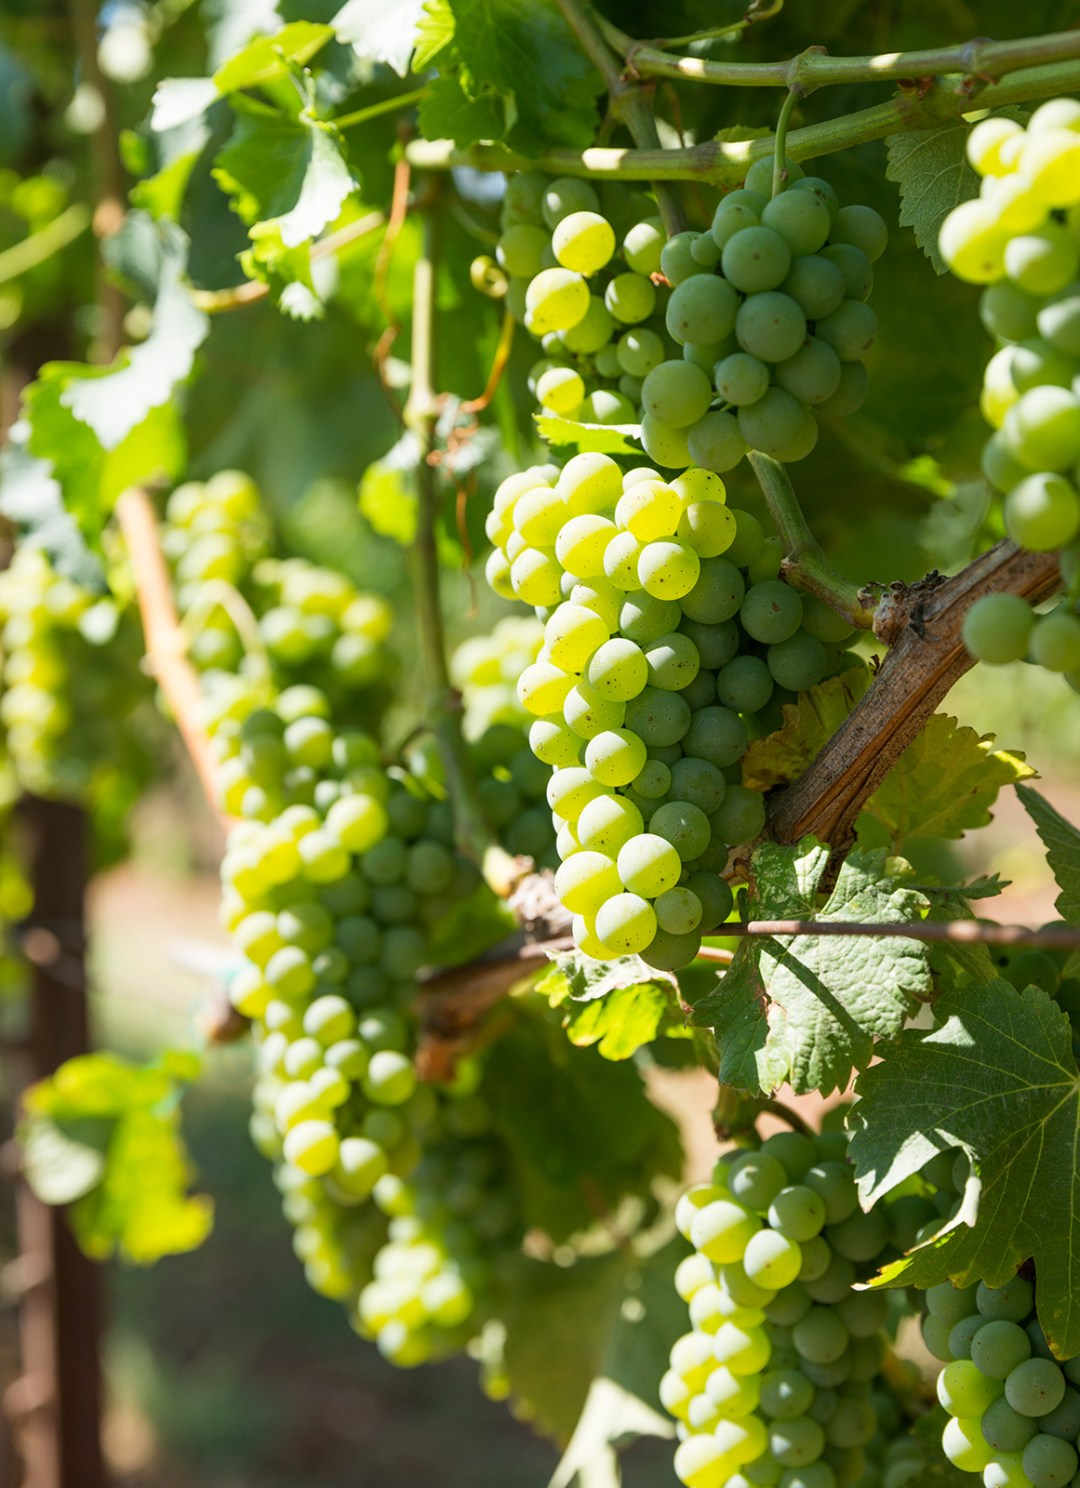 Green grapes on the vine in the sun